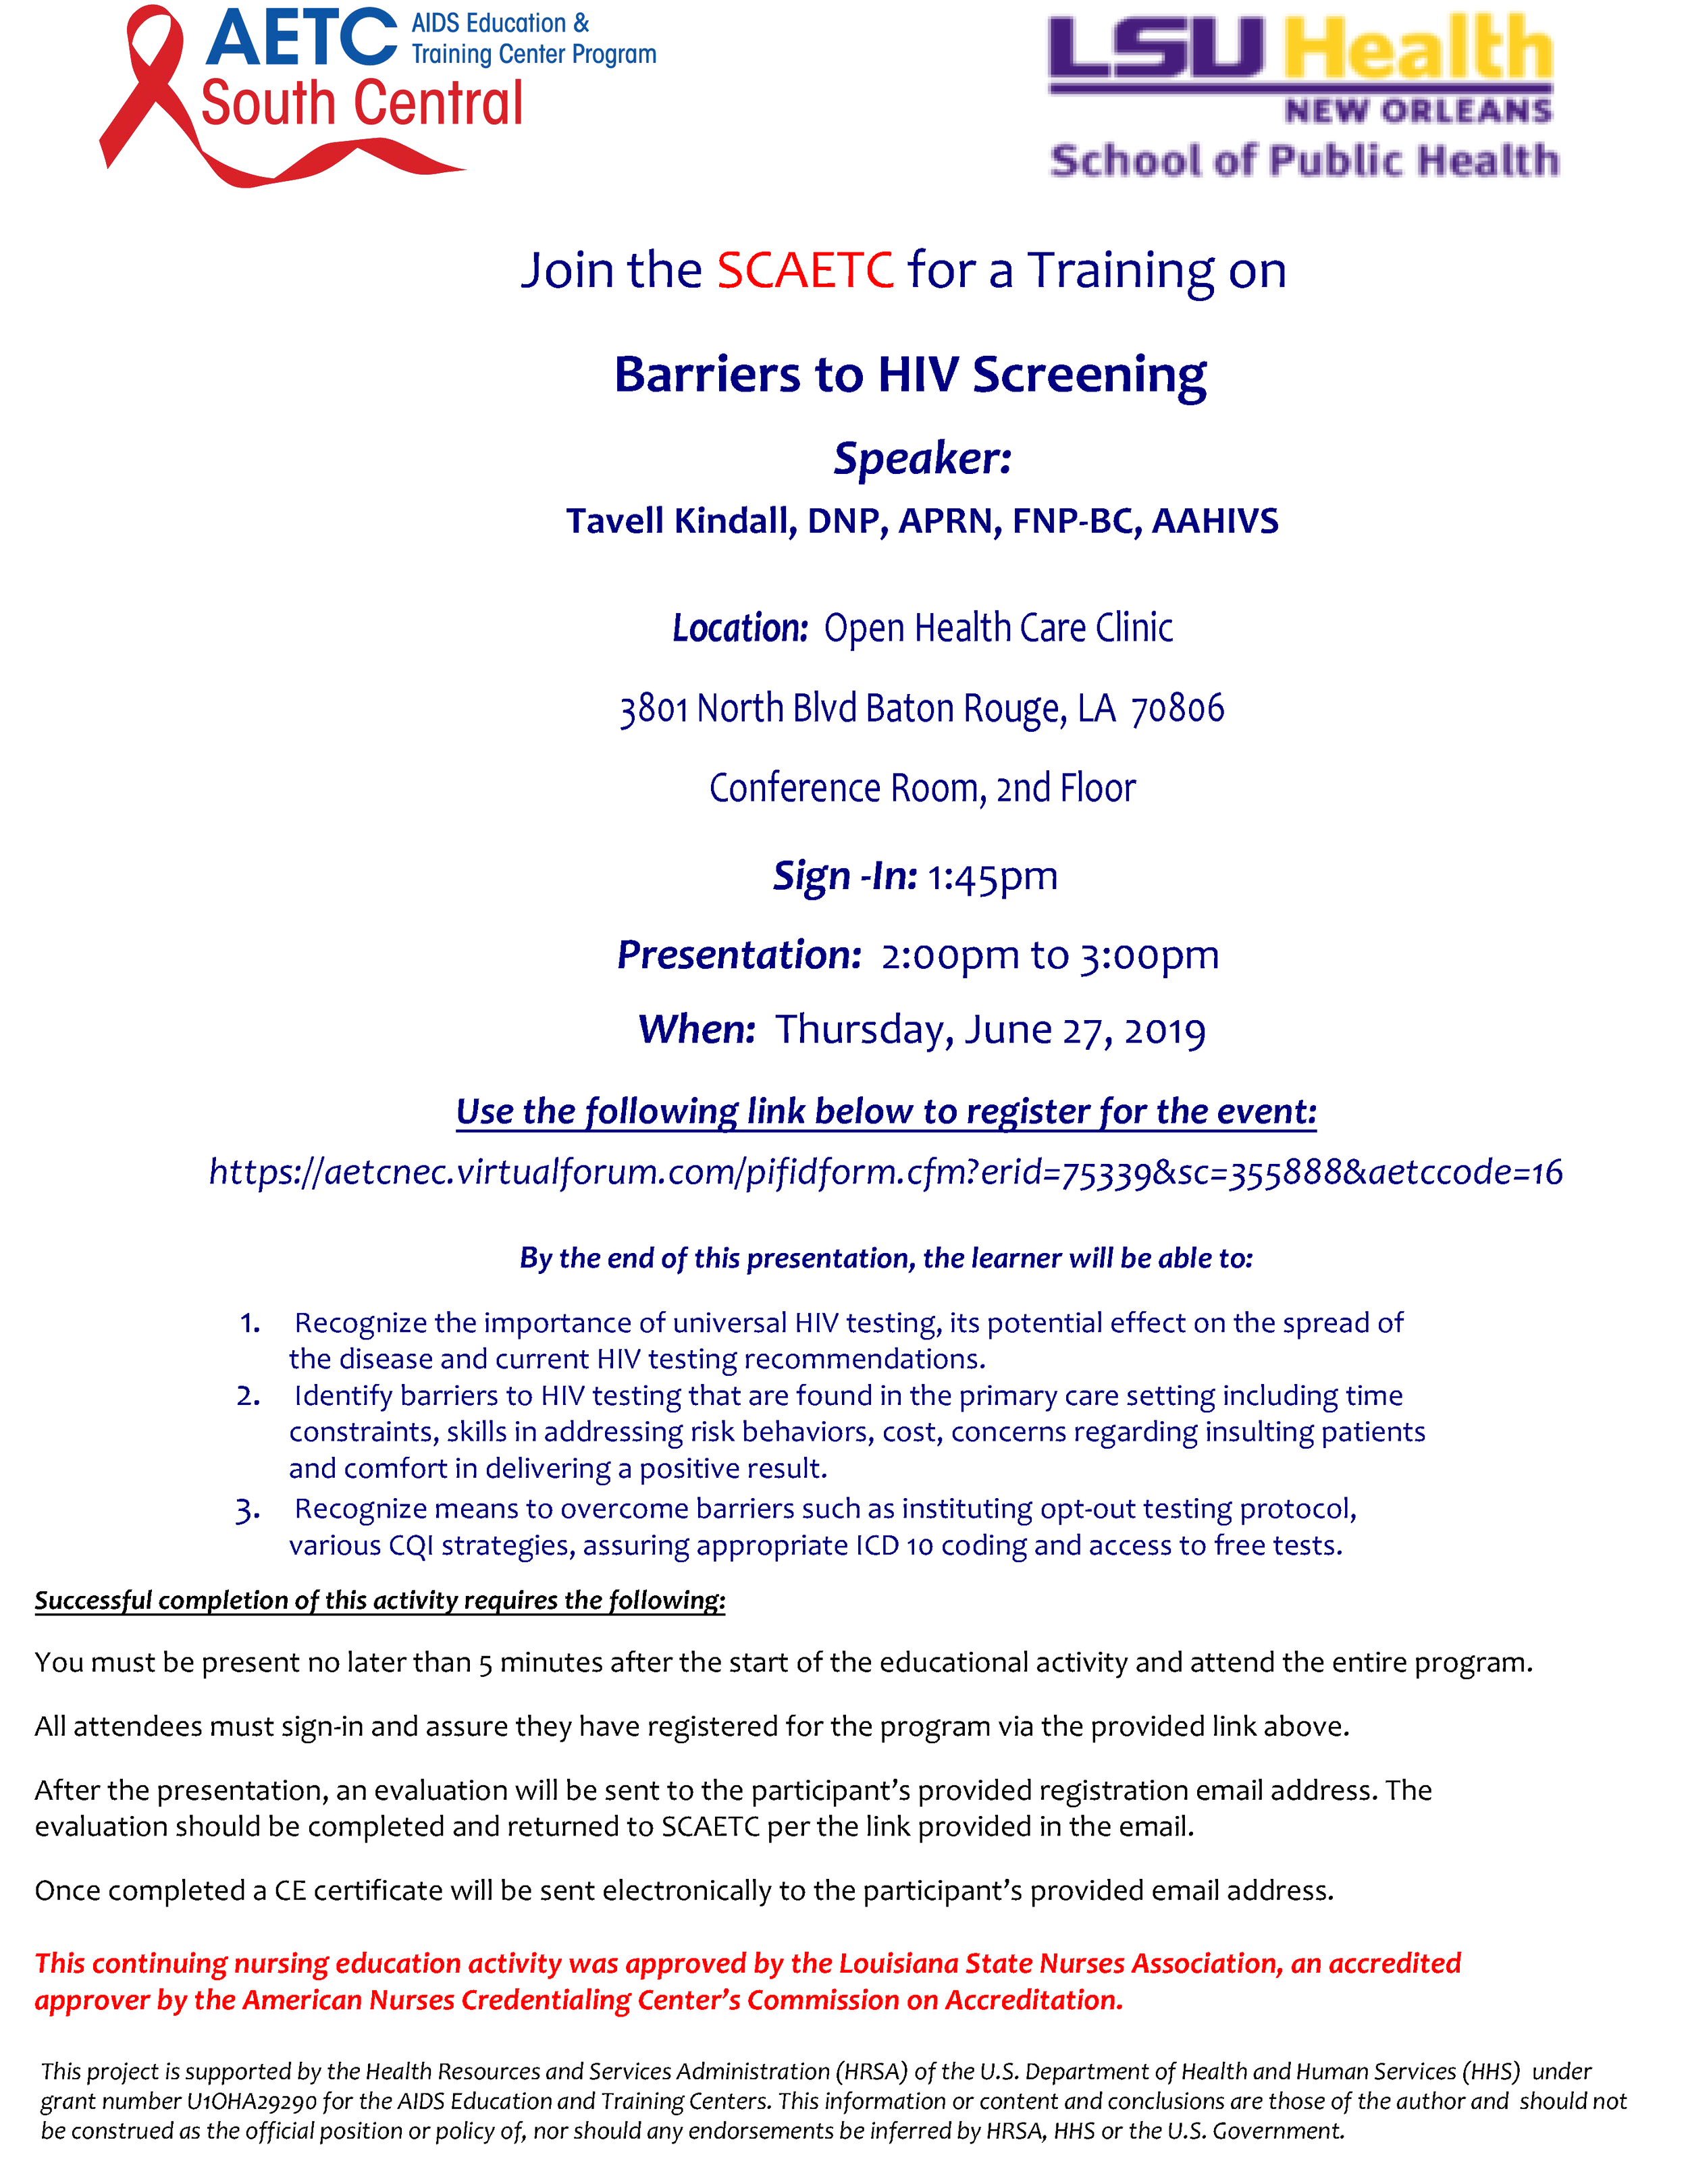 Barries to HIV Screening - Flyer.png